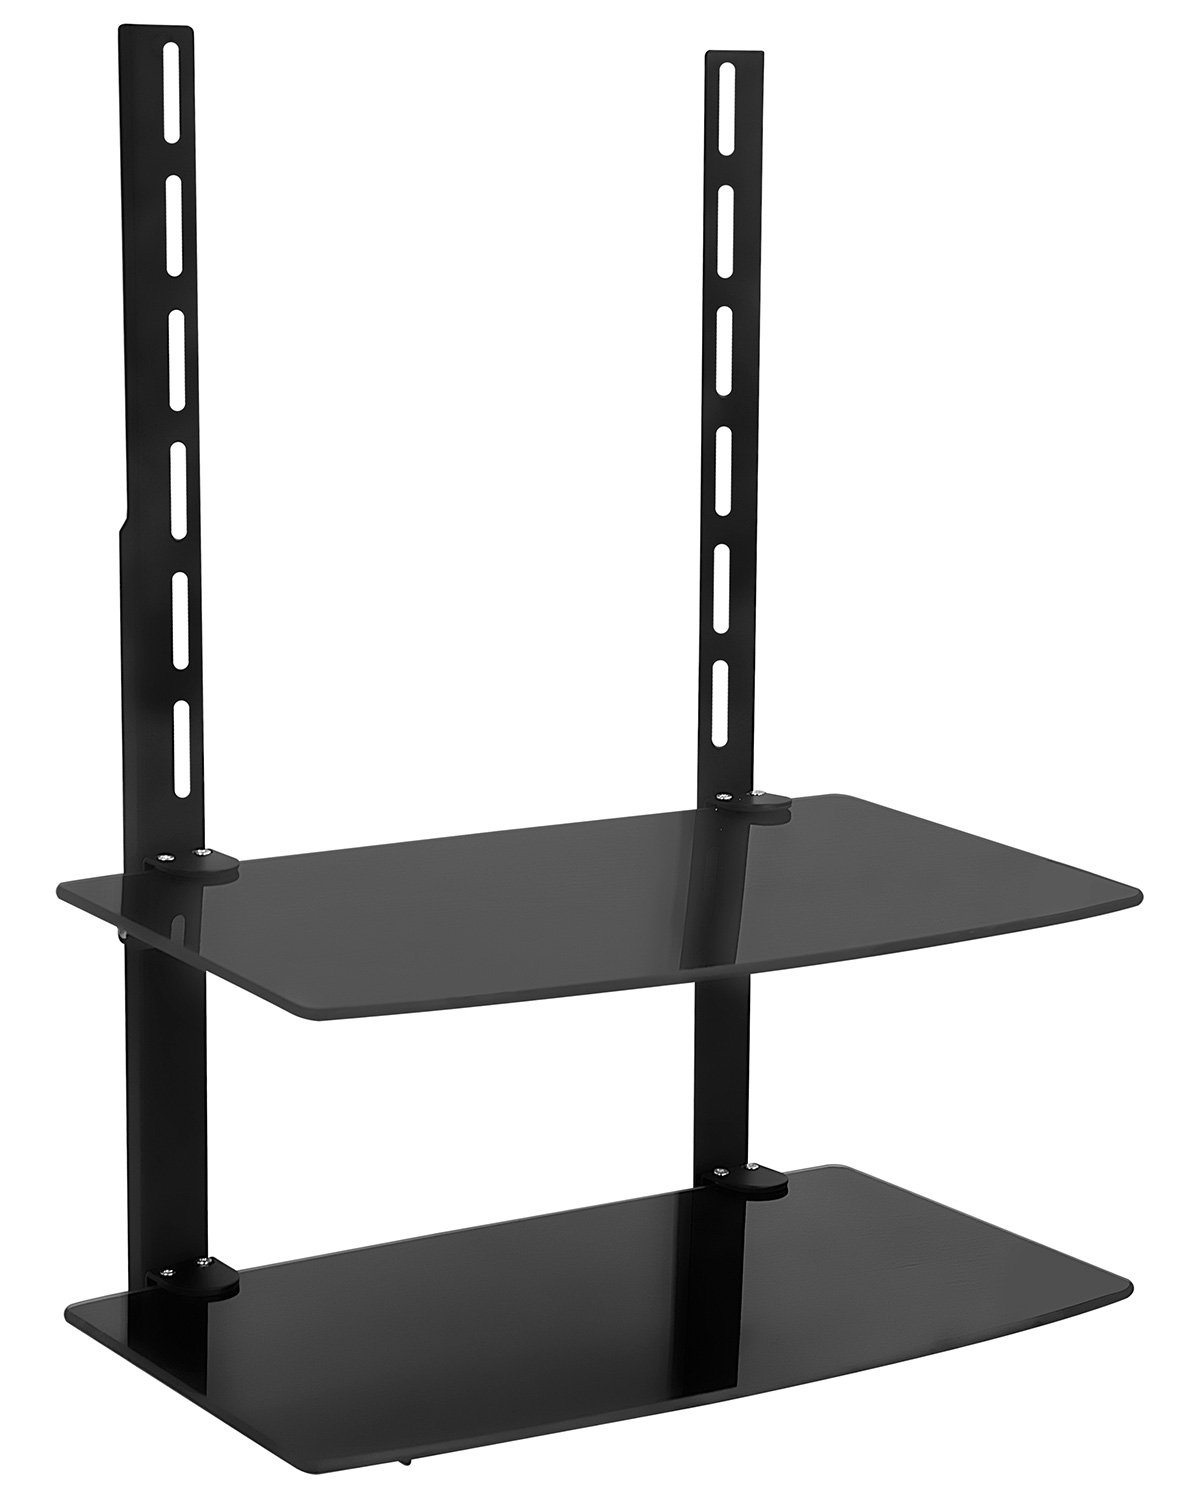 Amazon.com: Mount-It! TV Wall Mount Shelf For Cable Box, DVD Player, AV  Components and Accessories, Two Shelves, Tempered Glass Storage Bracket:  Home Audio ...